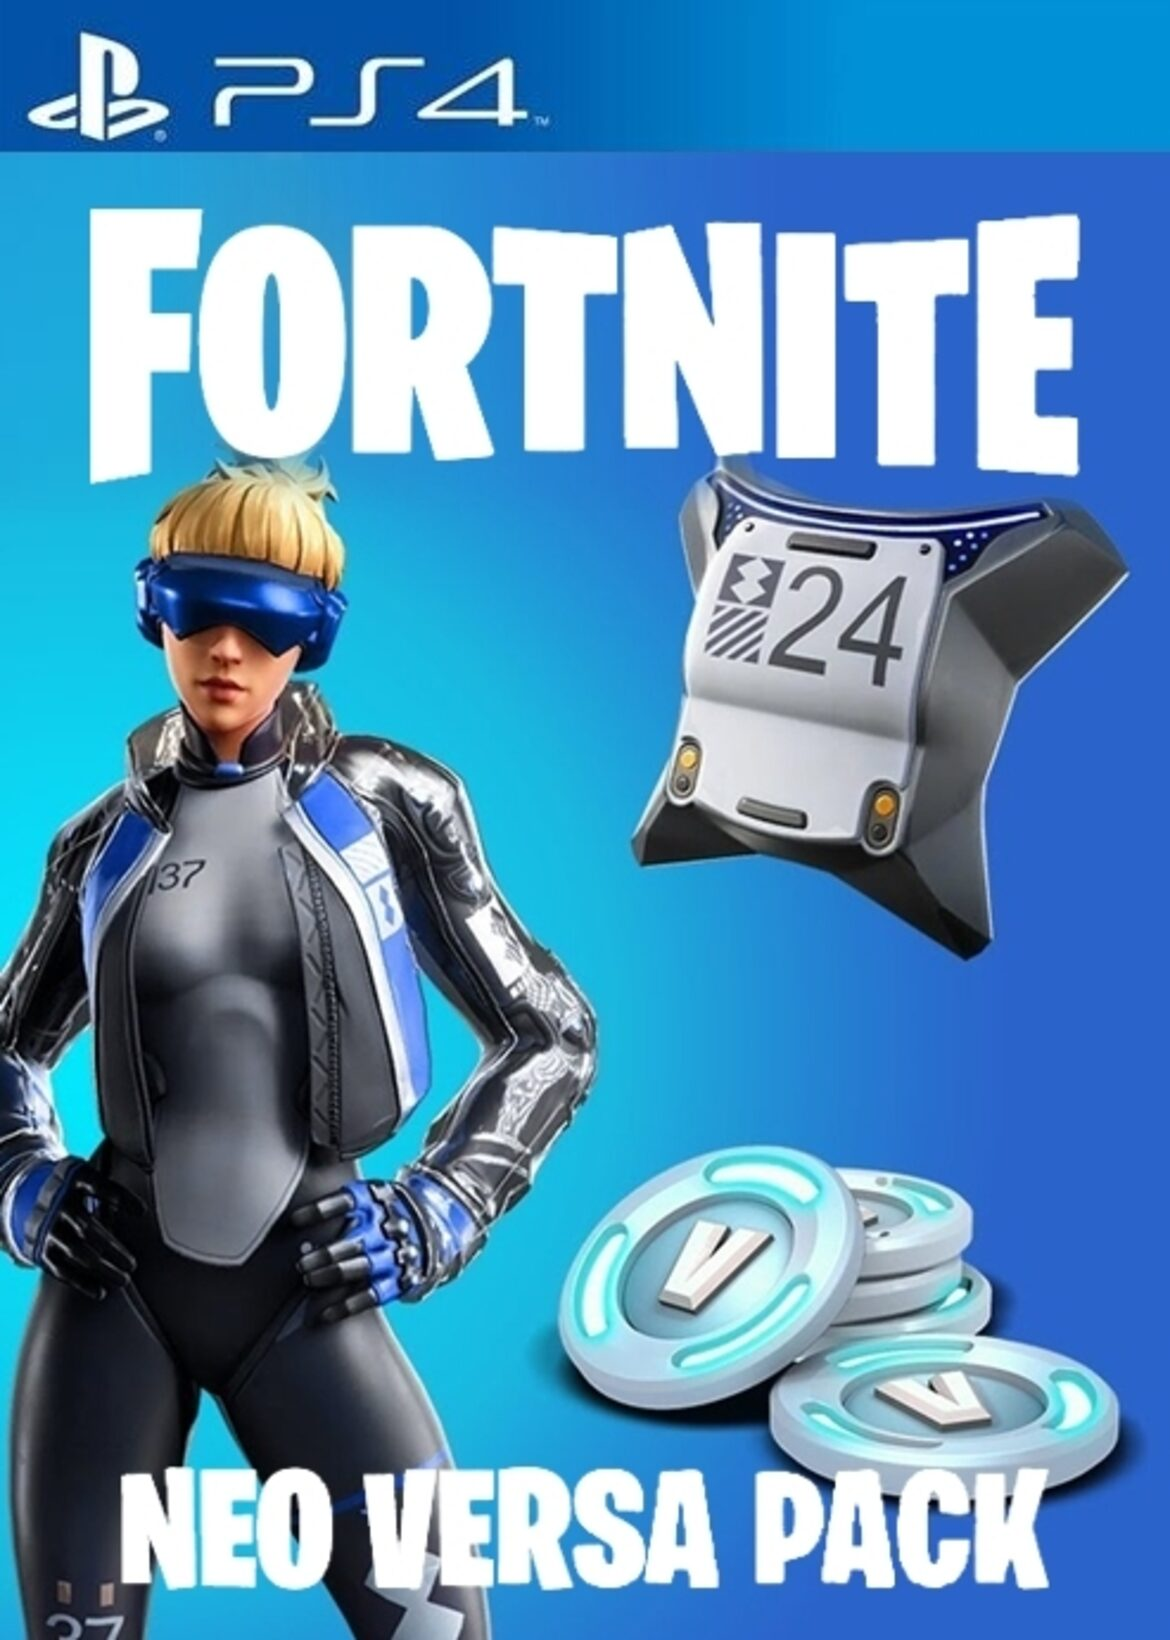 Pack Pavos Fortnite Neo Versa PS4 barato